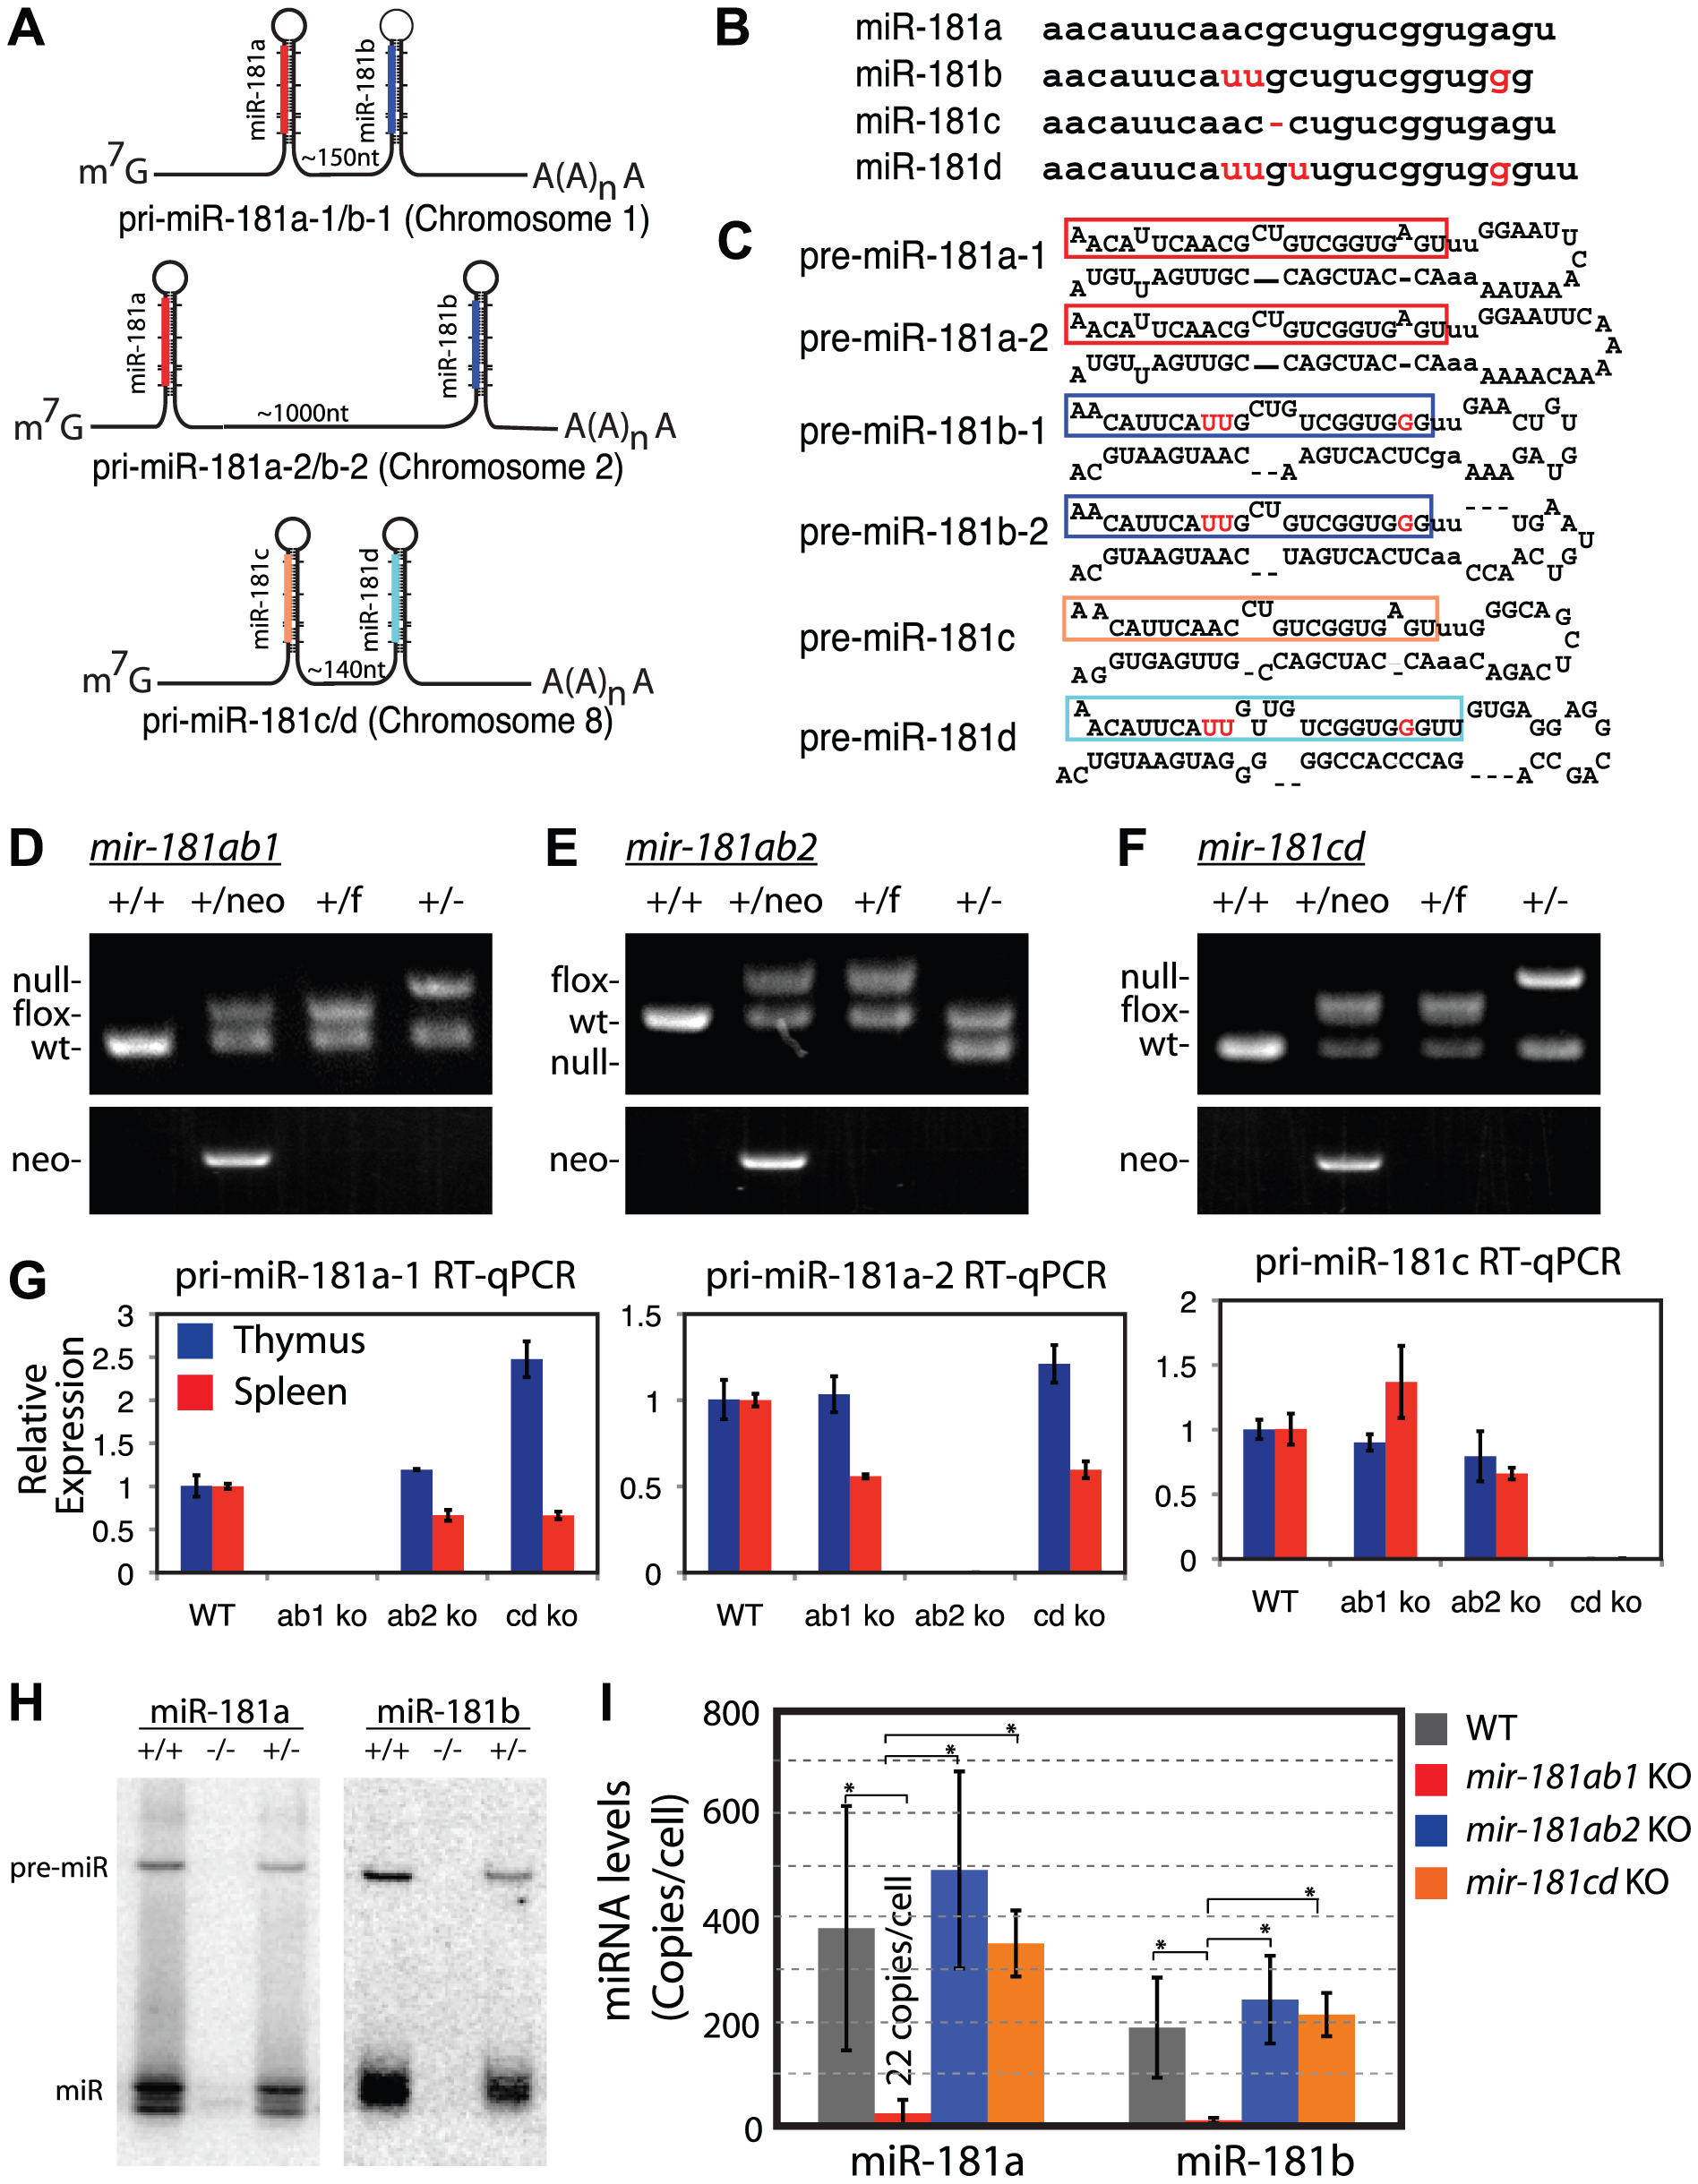 Generation of conditional <i>mir-181</i> alleles in mice.